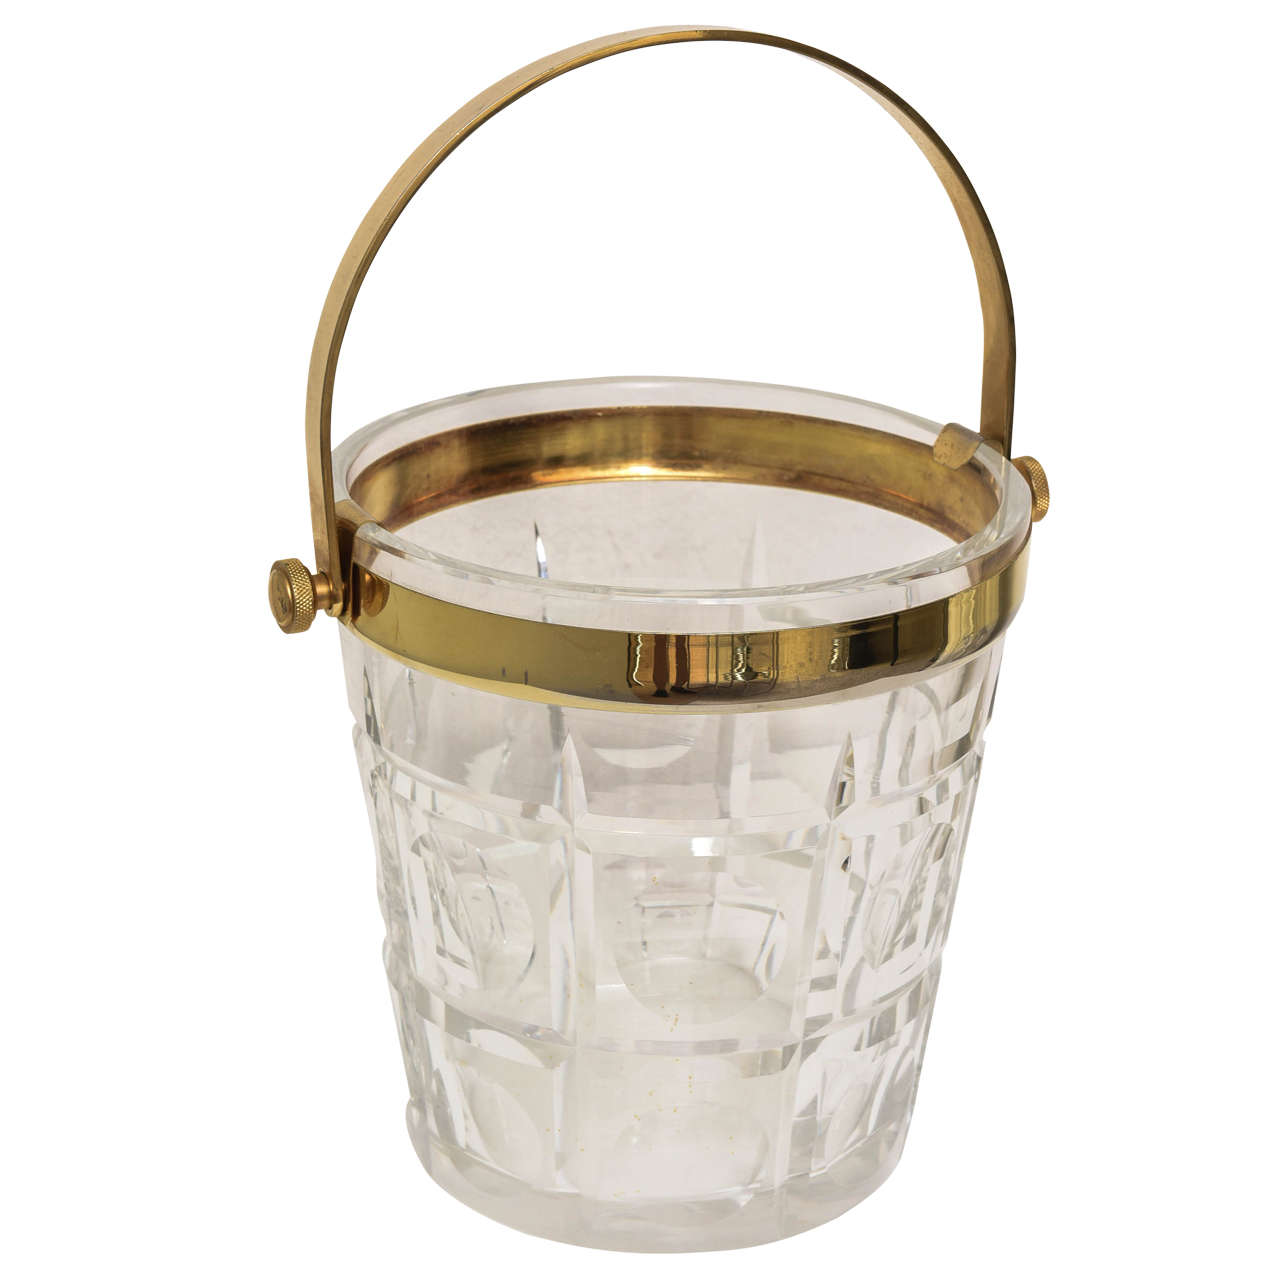 Hollywood-Regency Ice-Bucket in Crystal with Brass Accents:  American, 1940s